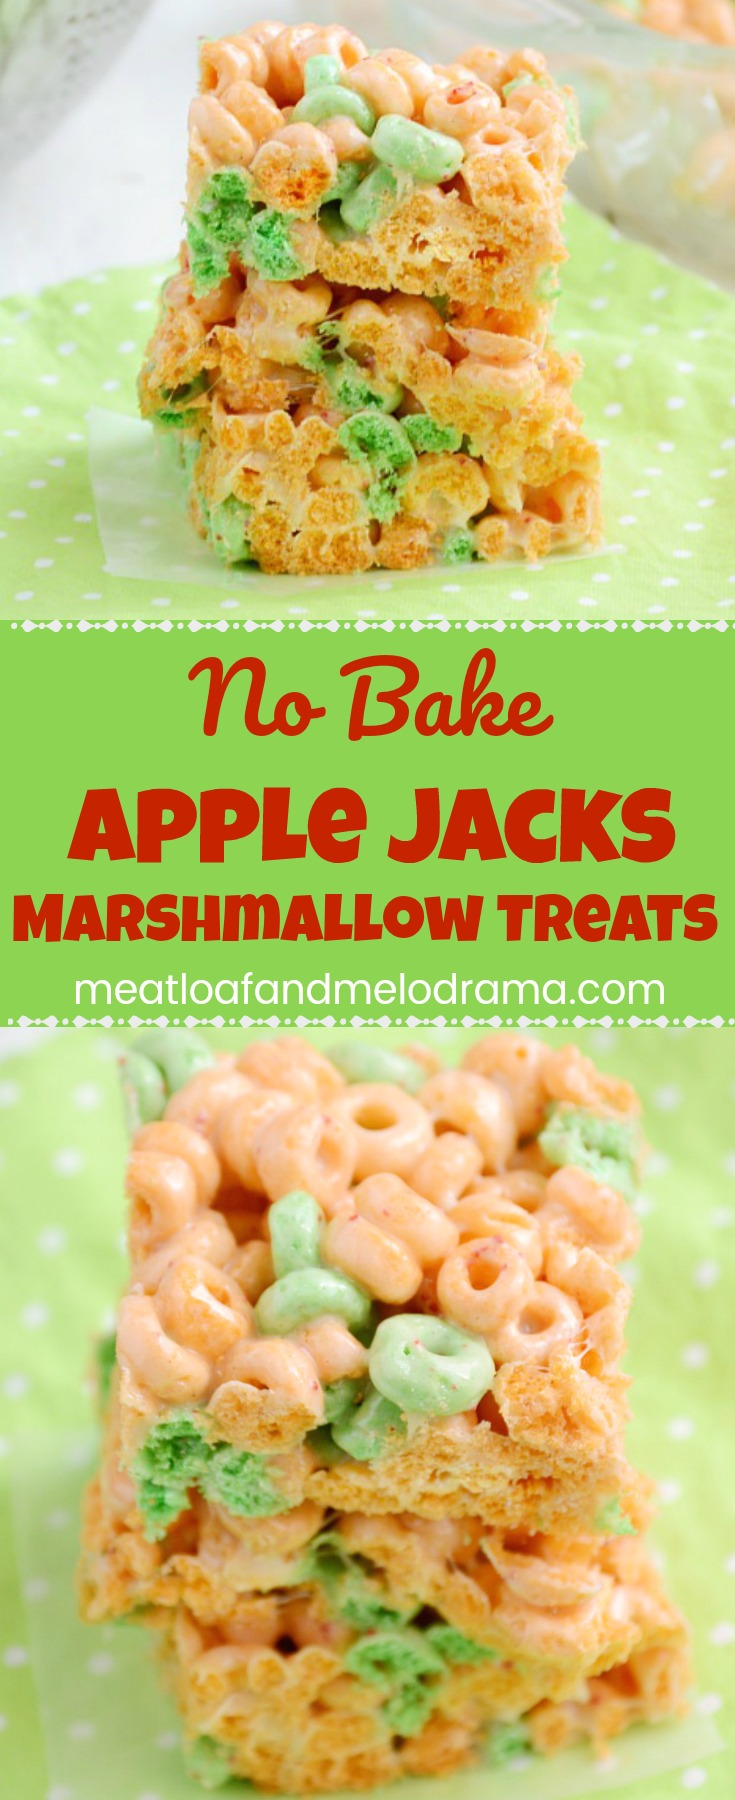 No Bake Apple Jacks Marshmallow Treats -- A quick and easy no bake dessert that's a perfect summer treat for kids of all ages